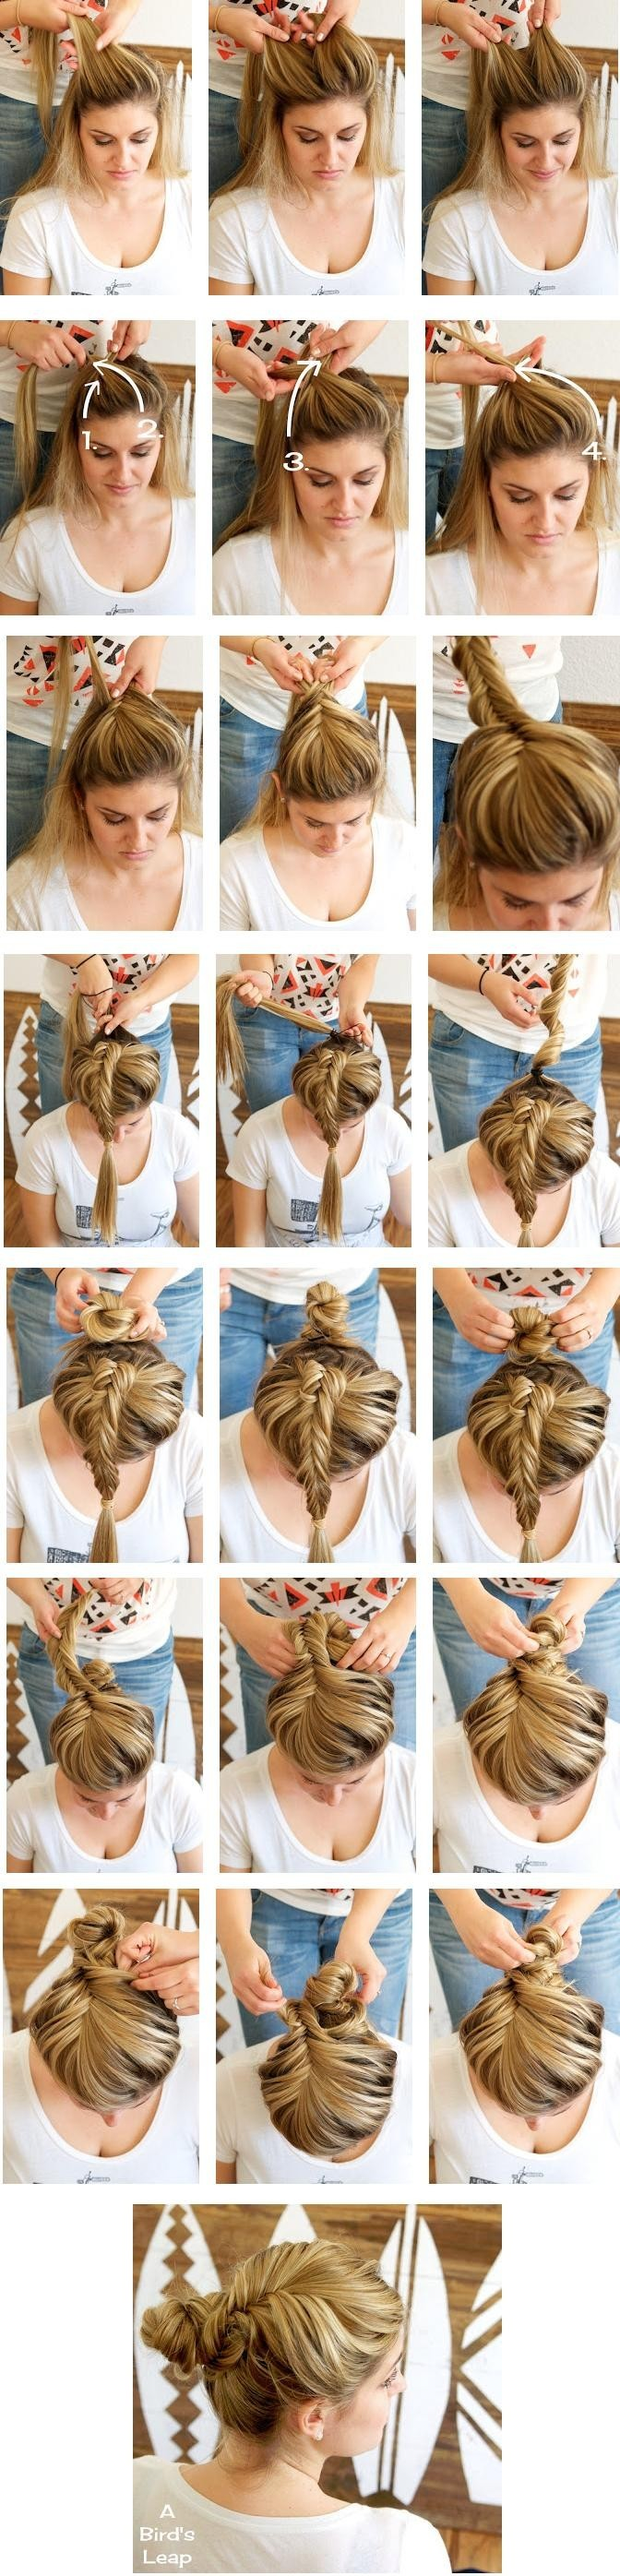 Braided Bun Hairstyles Tutorial: Girl Hairstyles for Long Hair/ Via